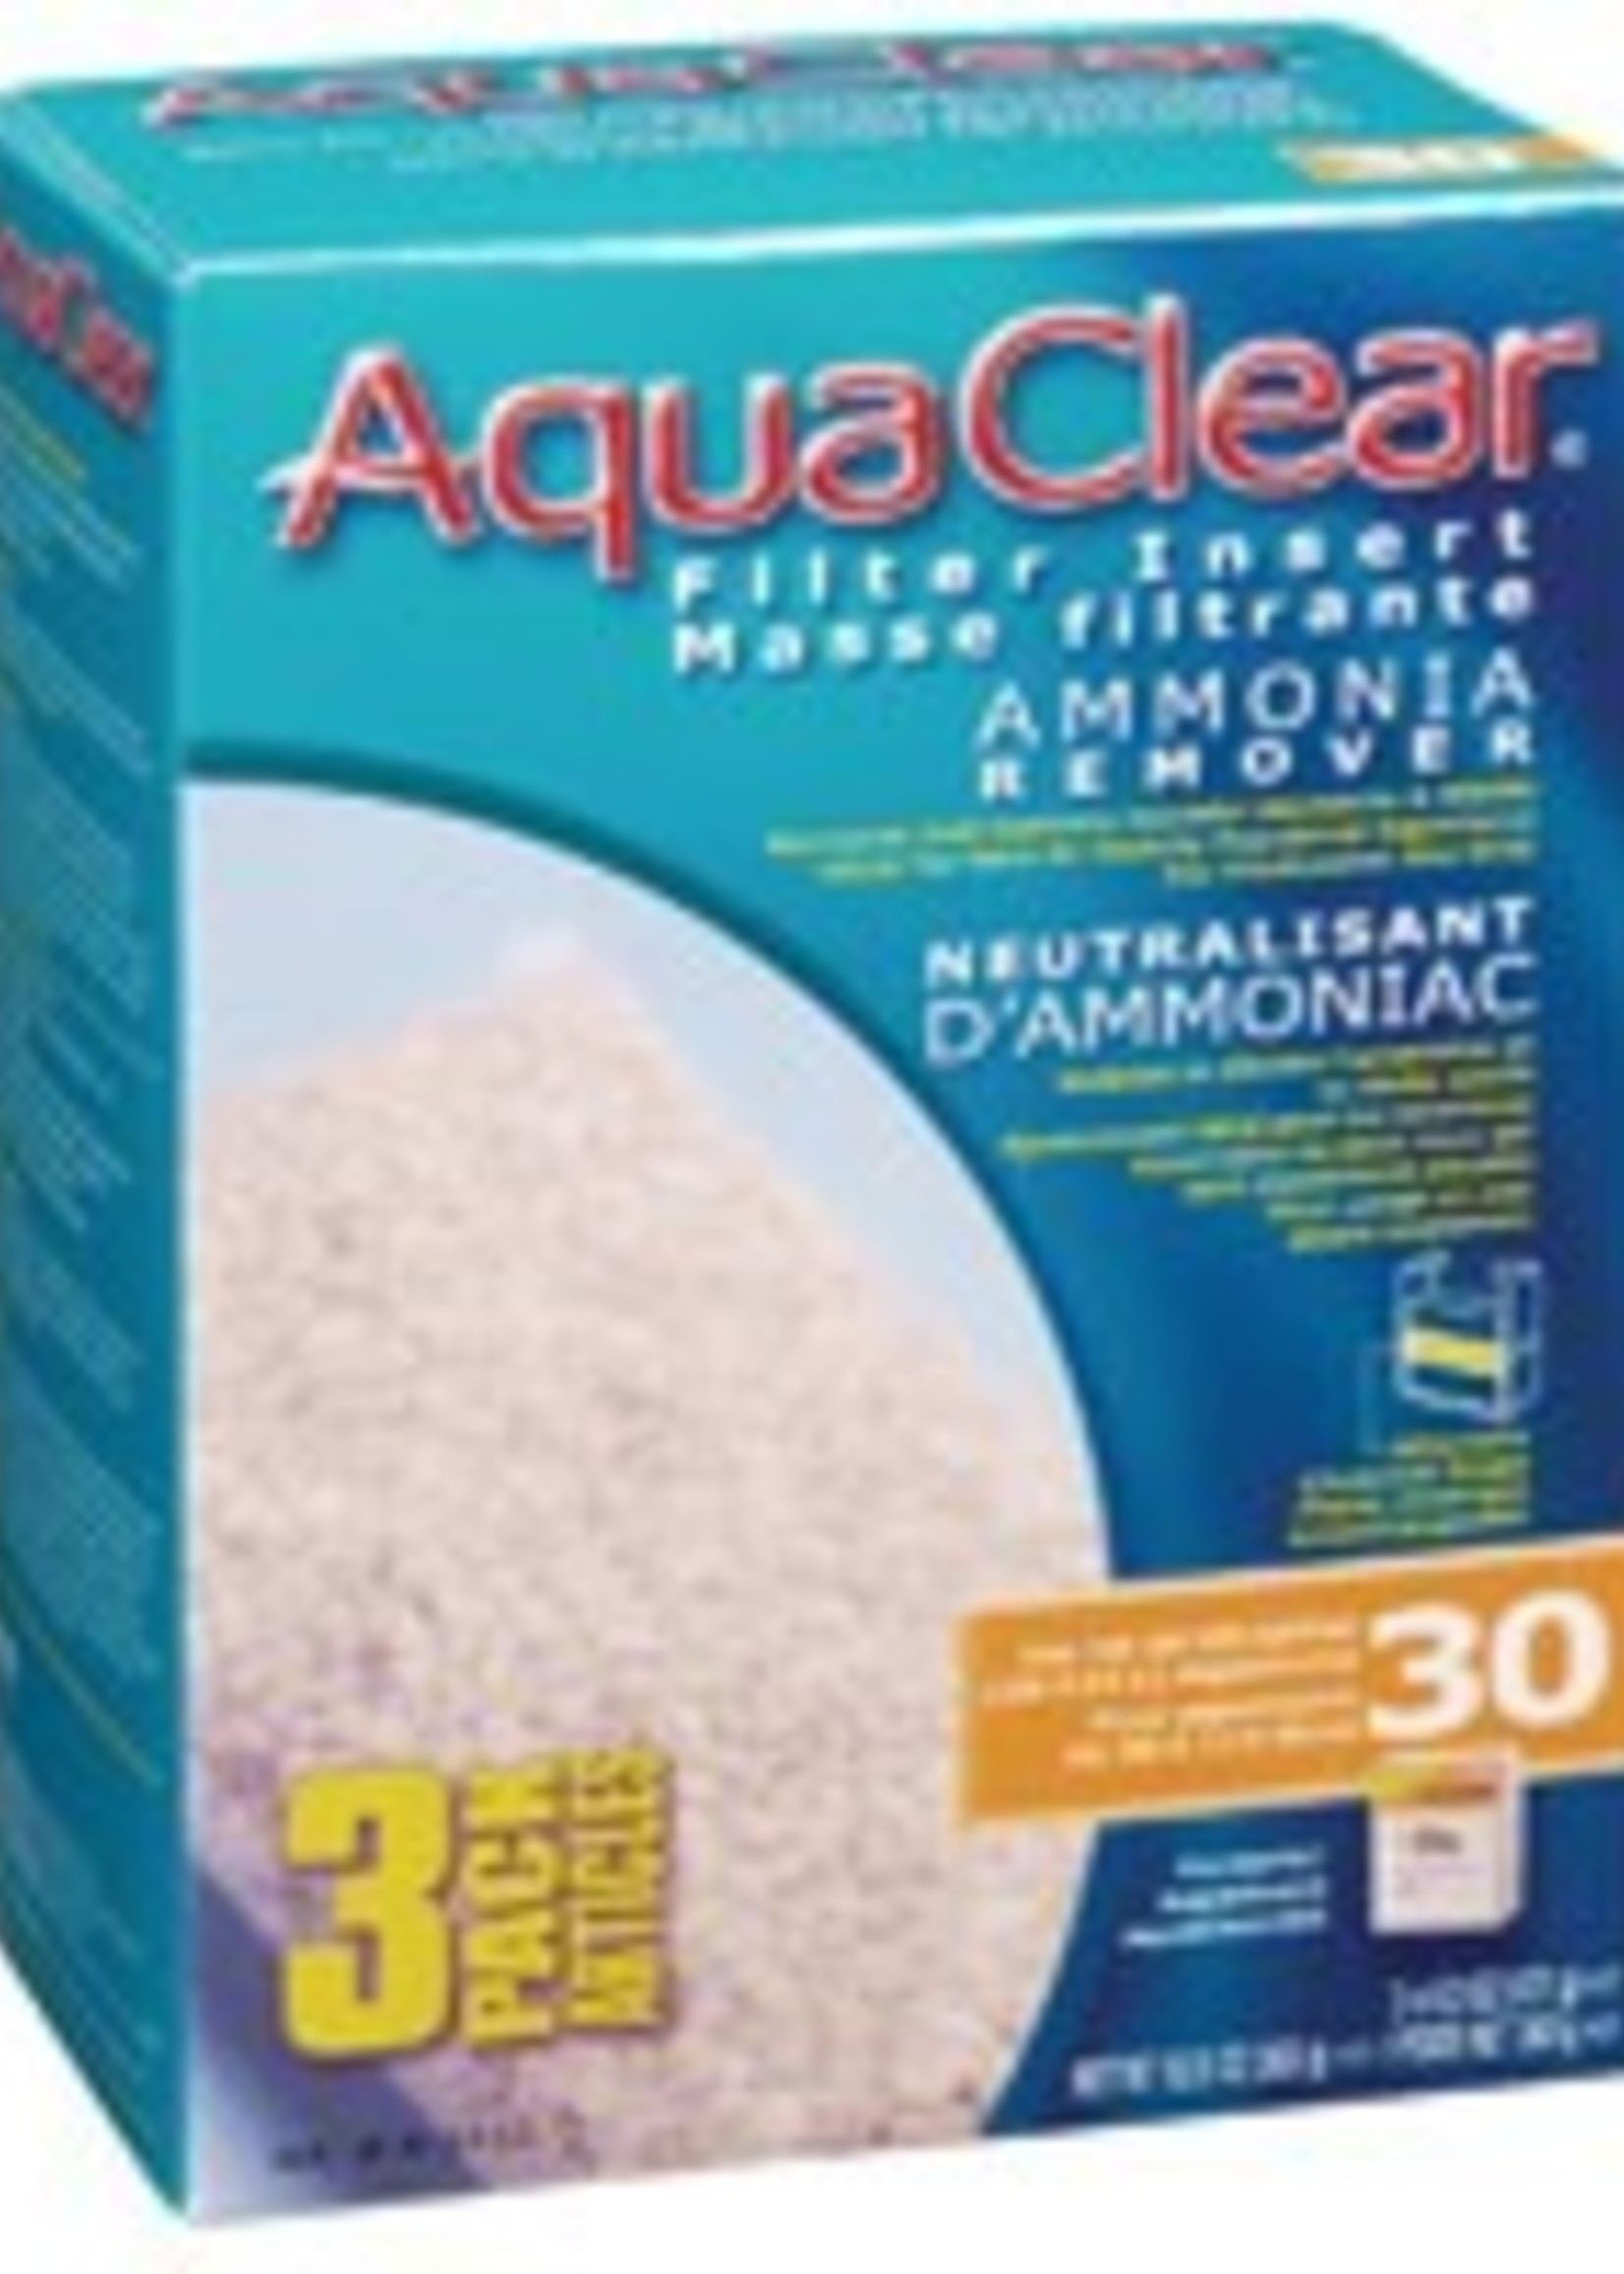 AquaClear 30 Ammonia Remover Filter Insert 3 pack, 363 g (12.8 oz)